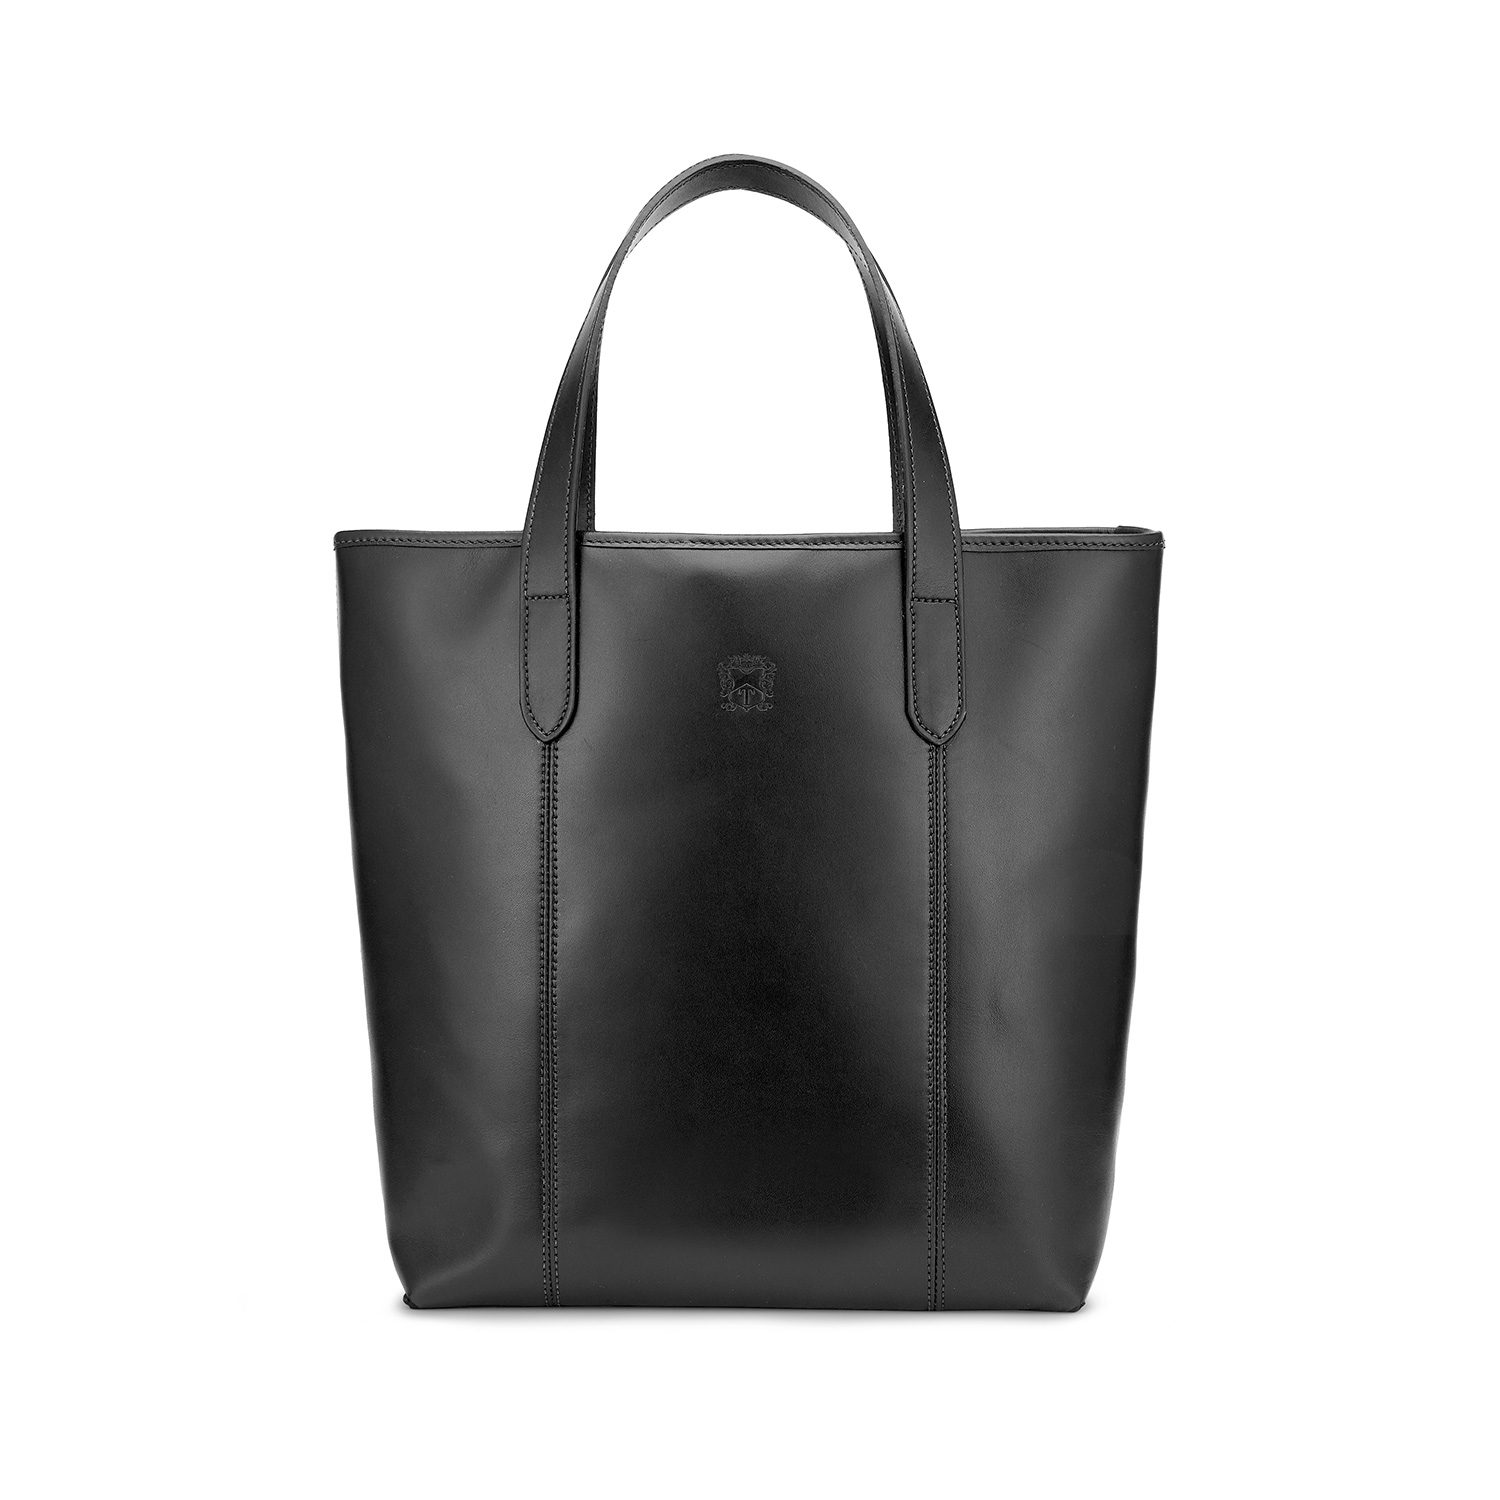 Tusting Leather Chelsea Tote Bag in Black Front